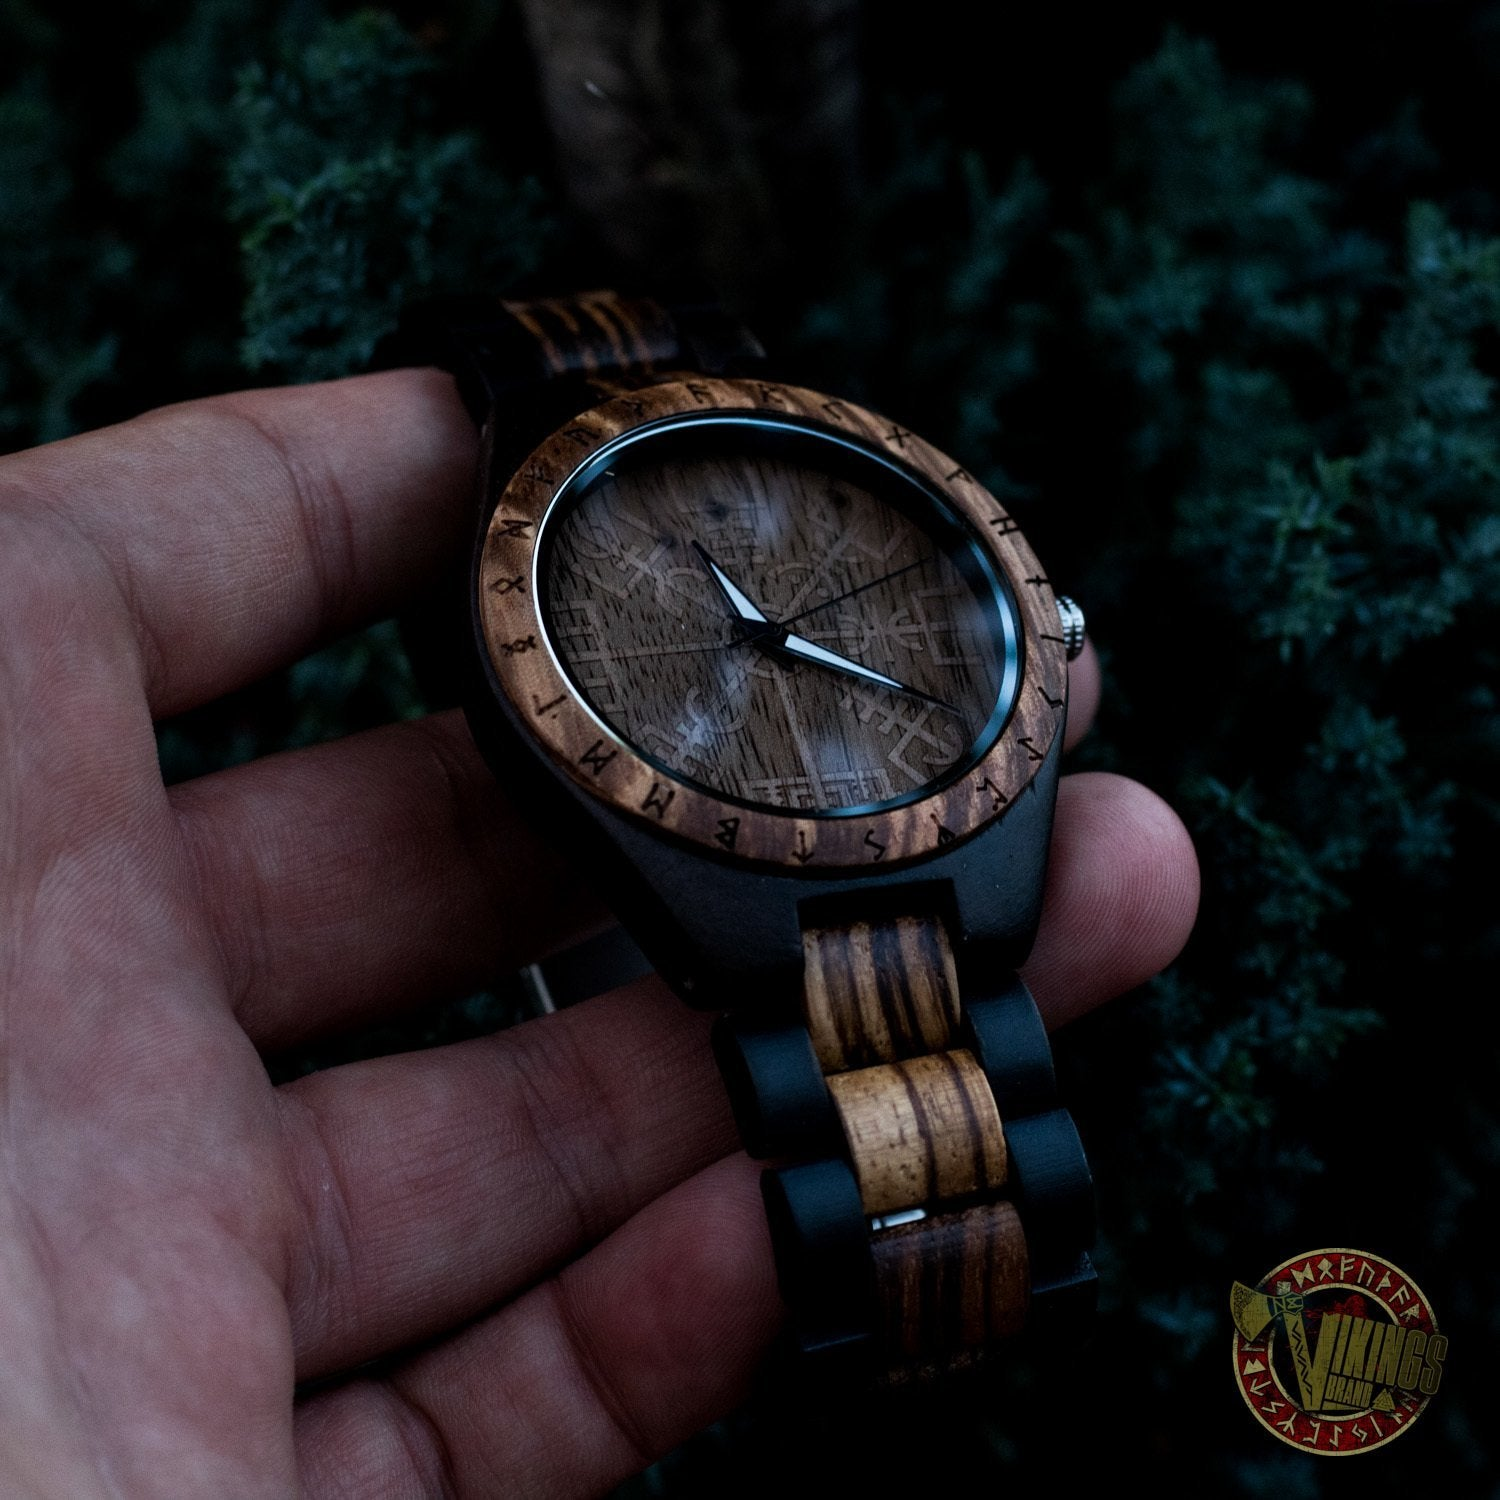 Ulf Viking Wooden Watch with Vegvisir Viking Symbol & Engraved Honor the Gods, Love Your Woman, Defend Your Kin Saying